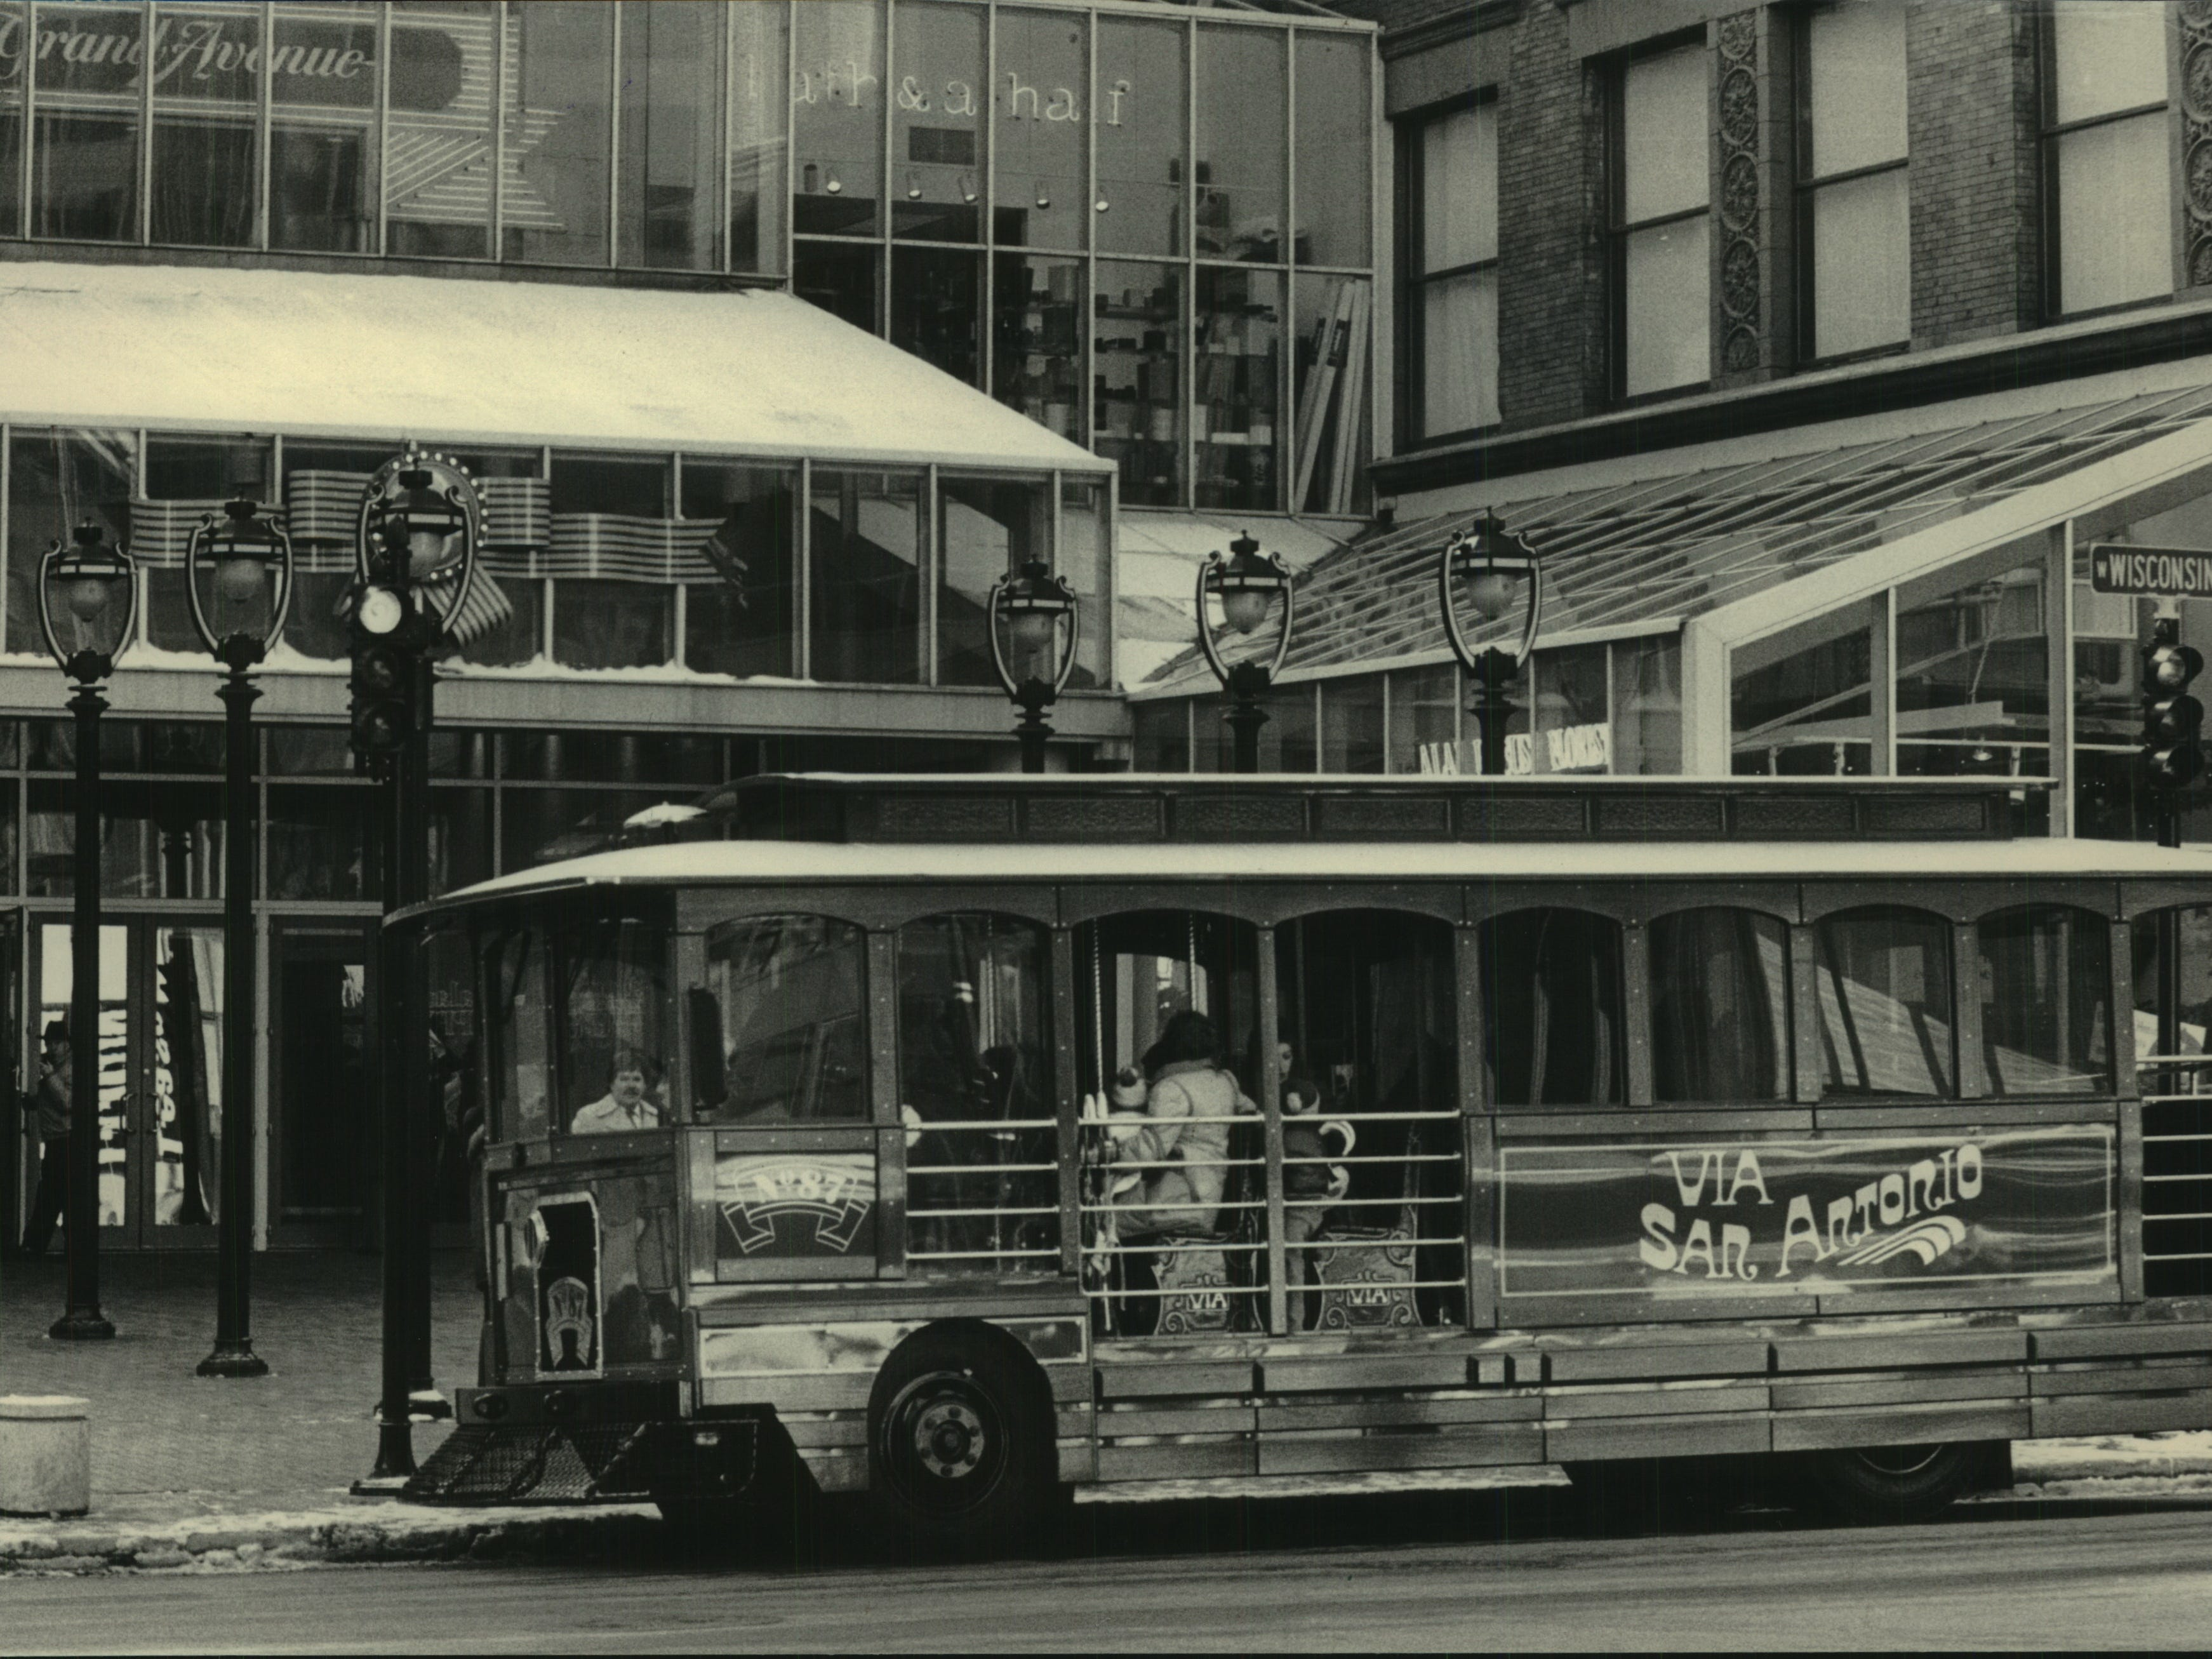 Milwaukeean's had an opportunity to ride a bus designed to look like a trolley Friday. The County Transit System offered free rides starting outside the Grand Avenue retail center. The county is considering buying several of the streetcars for shuttle service for Downtown shoppers and carrying passengers to special events. Transport Company - Buses.